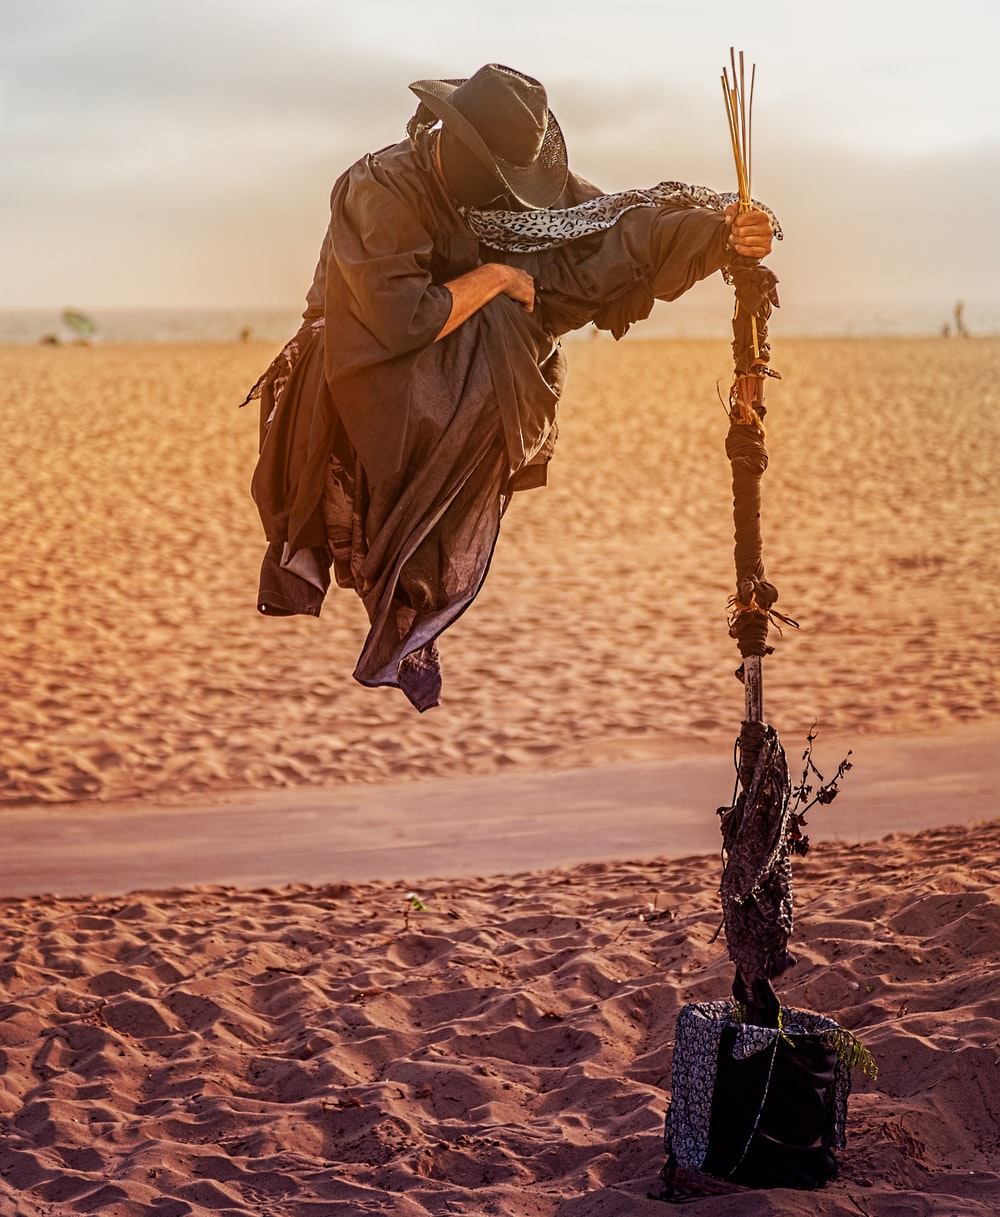 person in overall suit holding rod floating on desert field